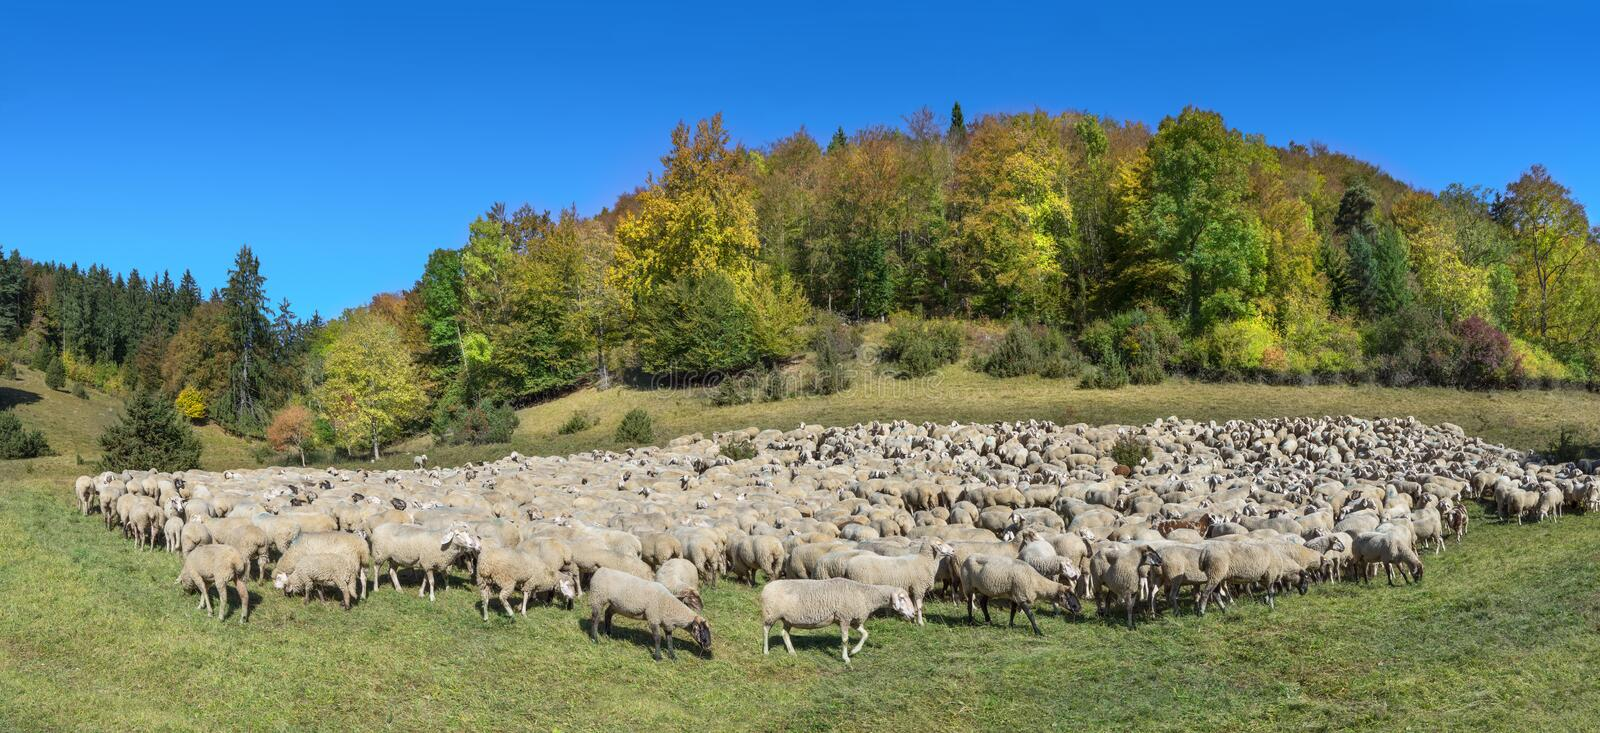 Flock of sheep in autumn royalty free stock images